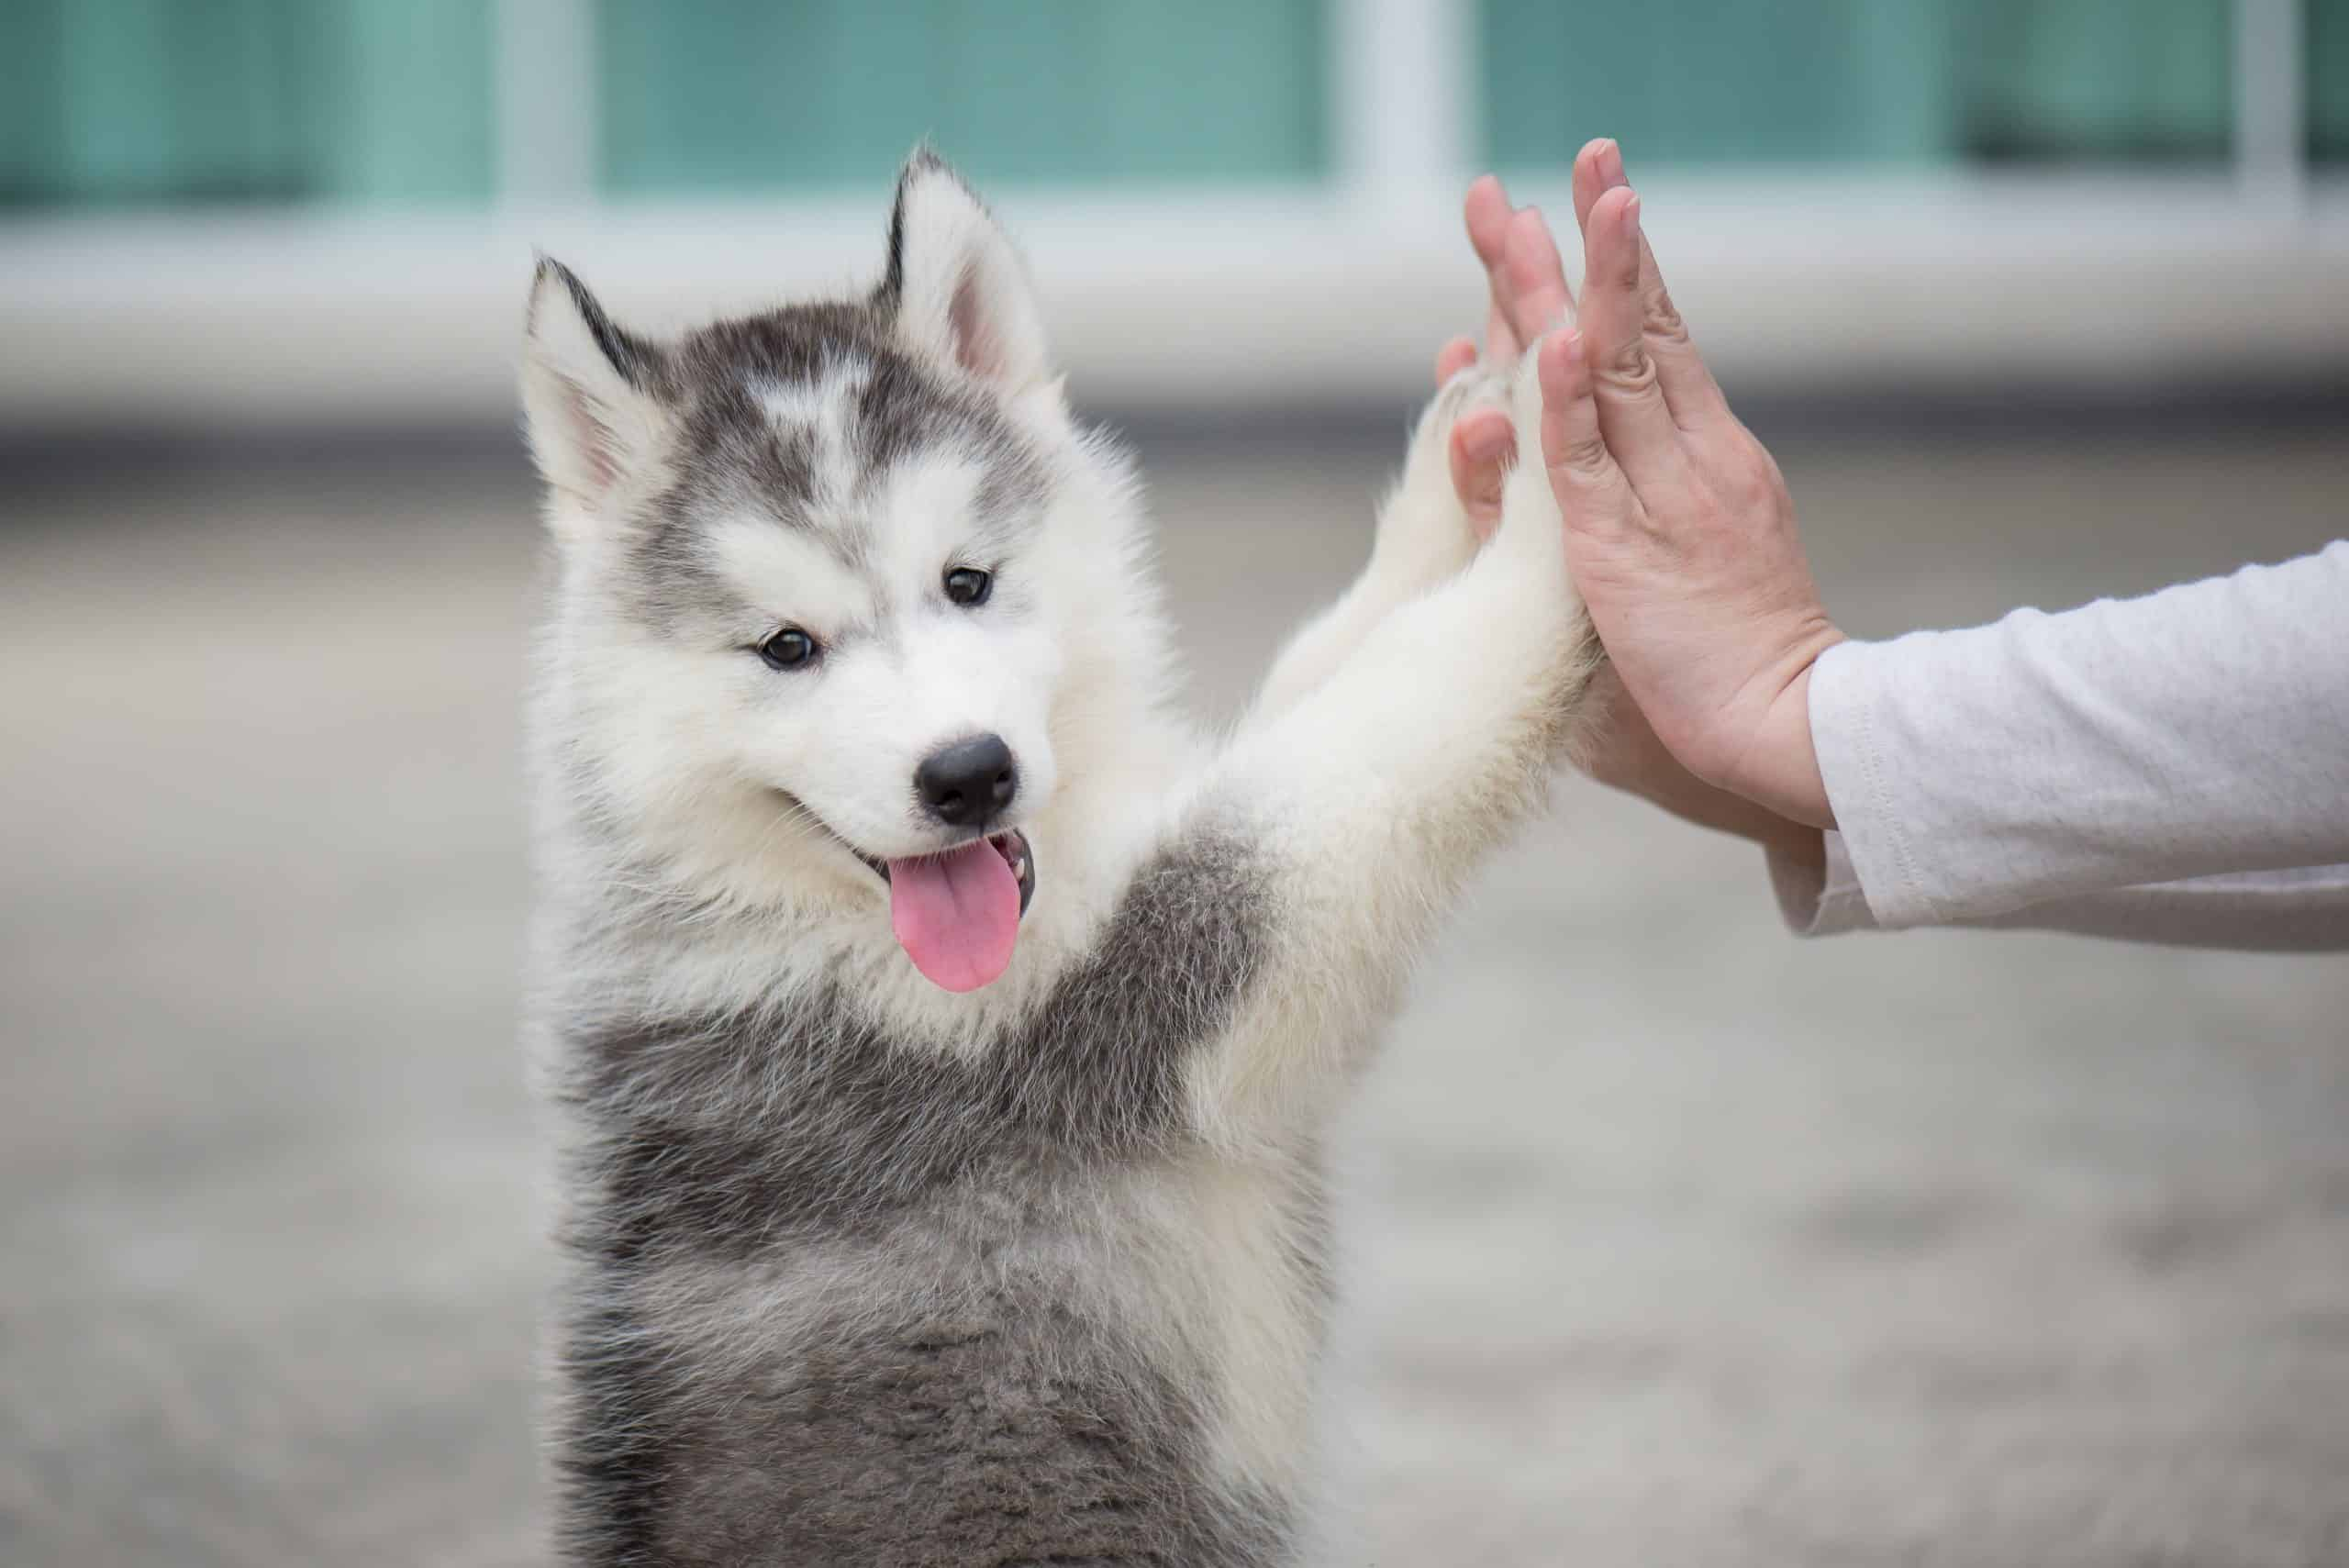 Siberian Husky puppy plays the touch bonding game with owner.